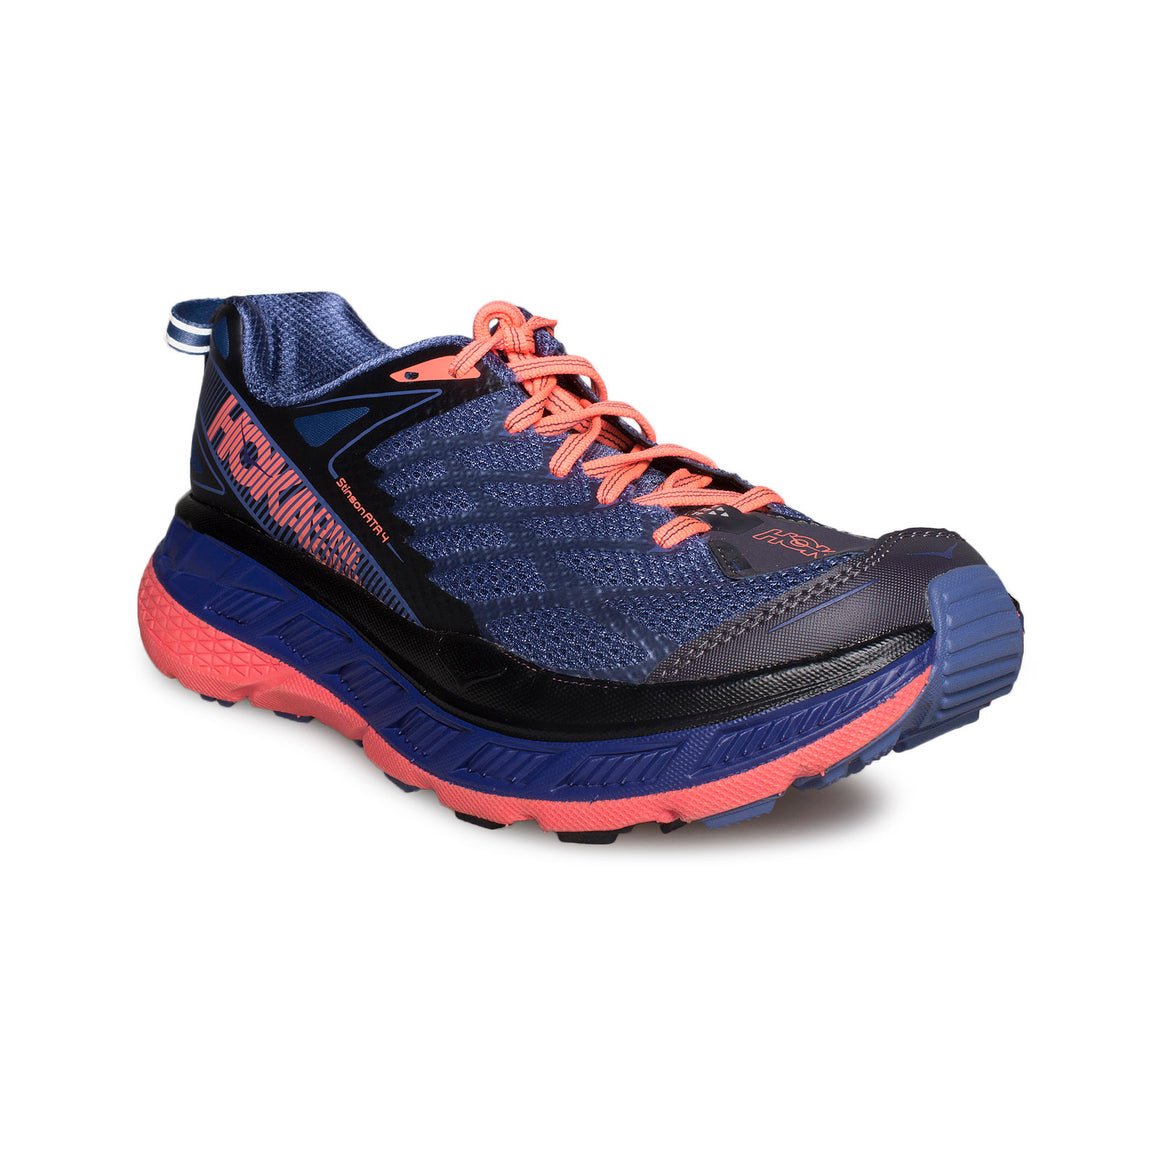 Hoka One One Stinson ATR 4 Marlin / Neon Coral Running Shoes - Women's